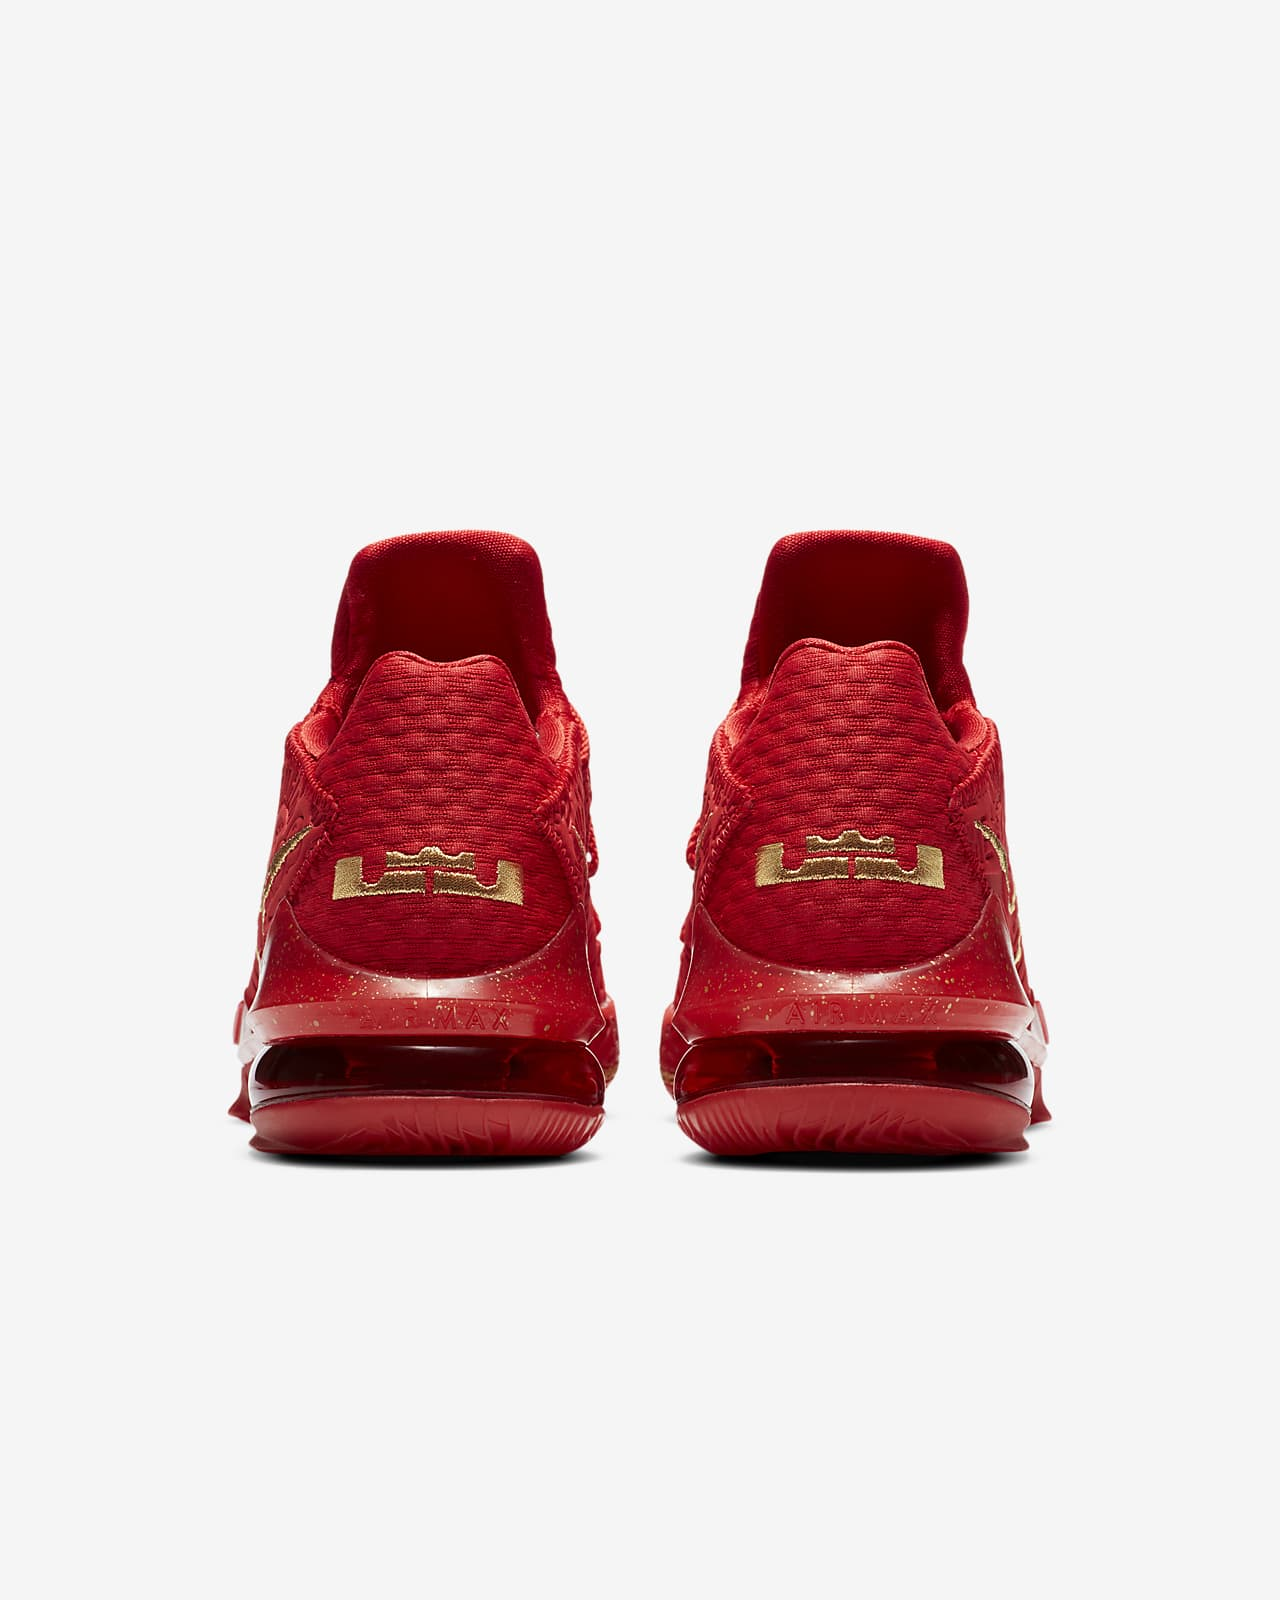 lebron low red